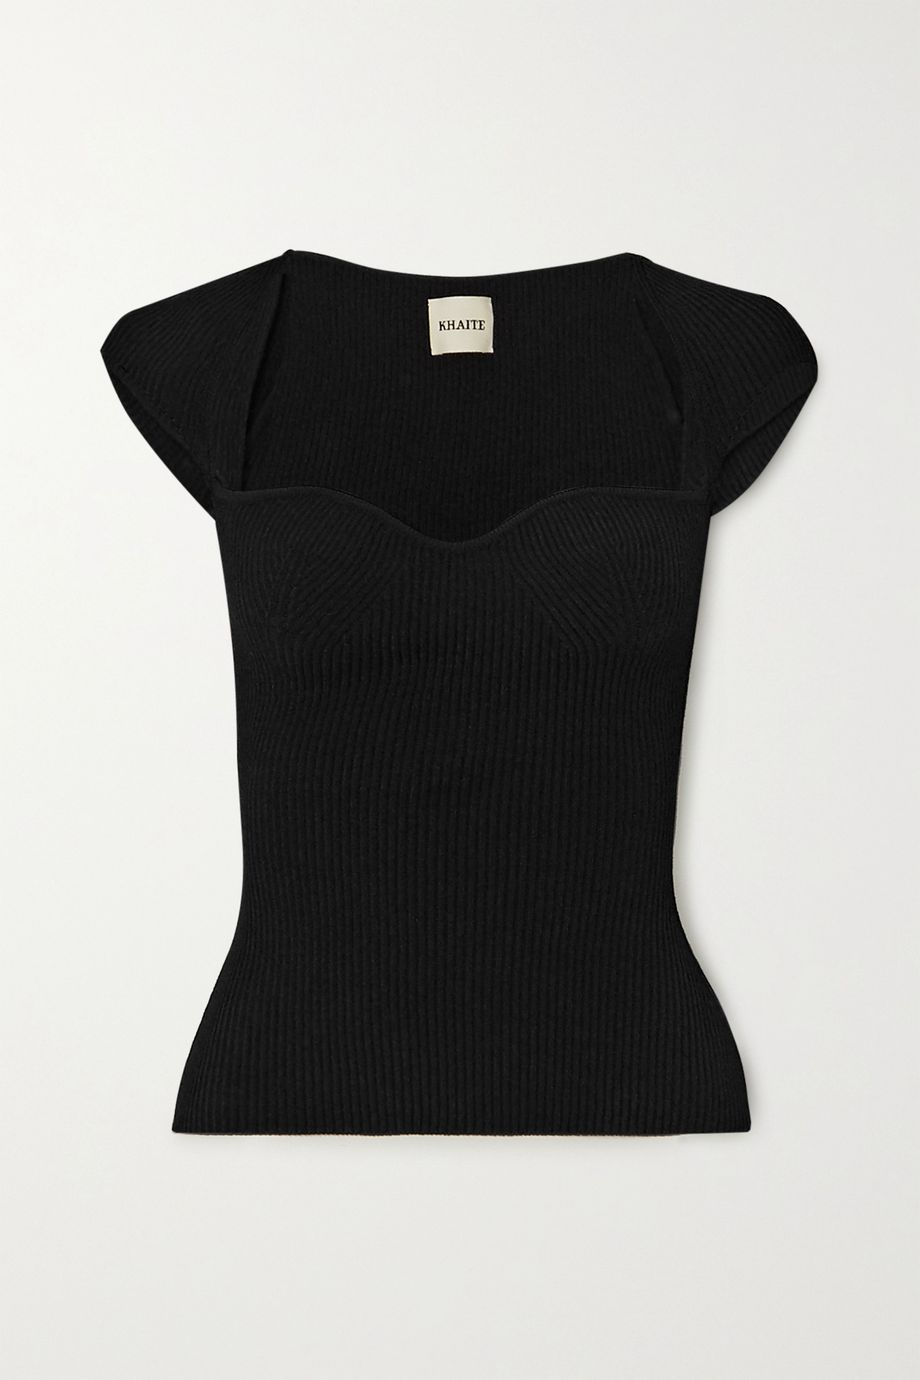 Khaite Ista ribbed-knit top